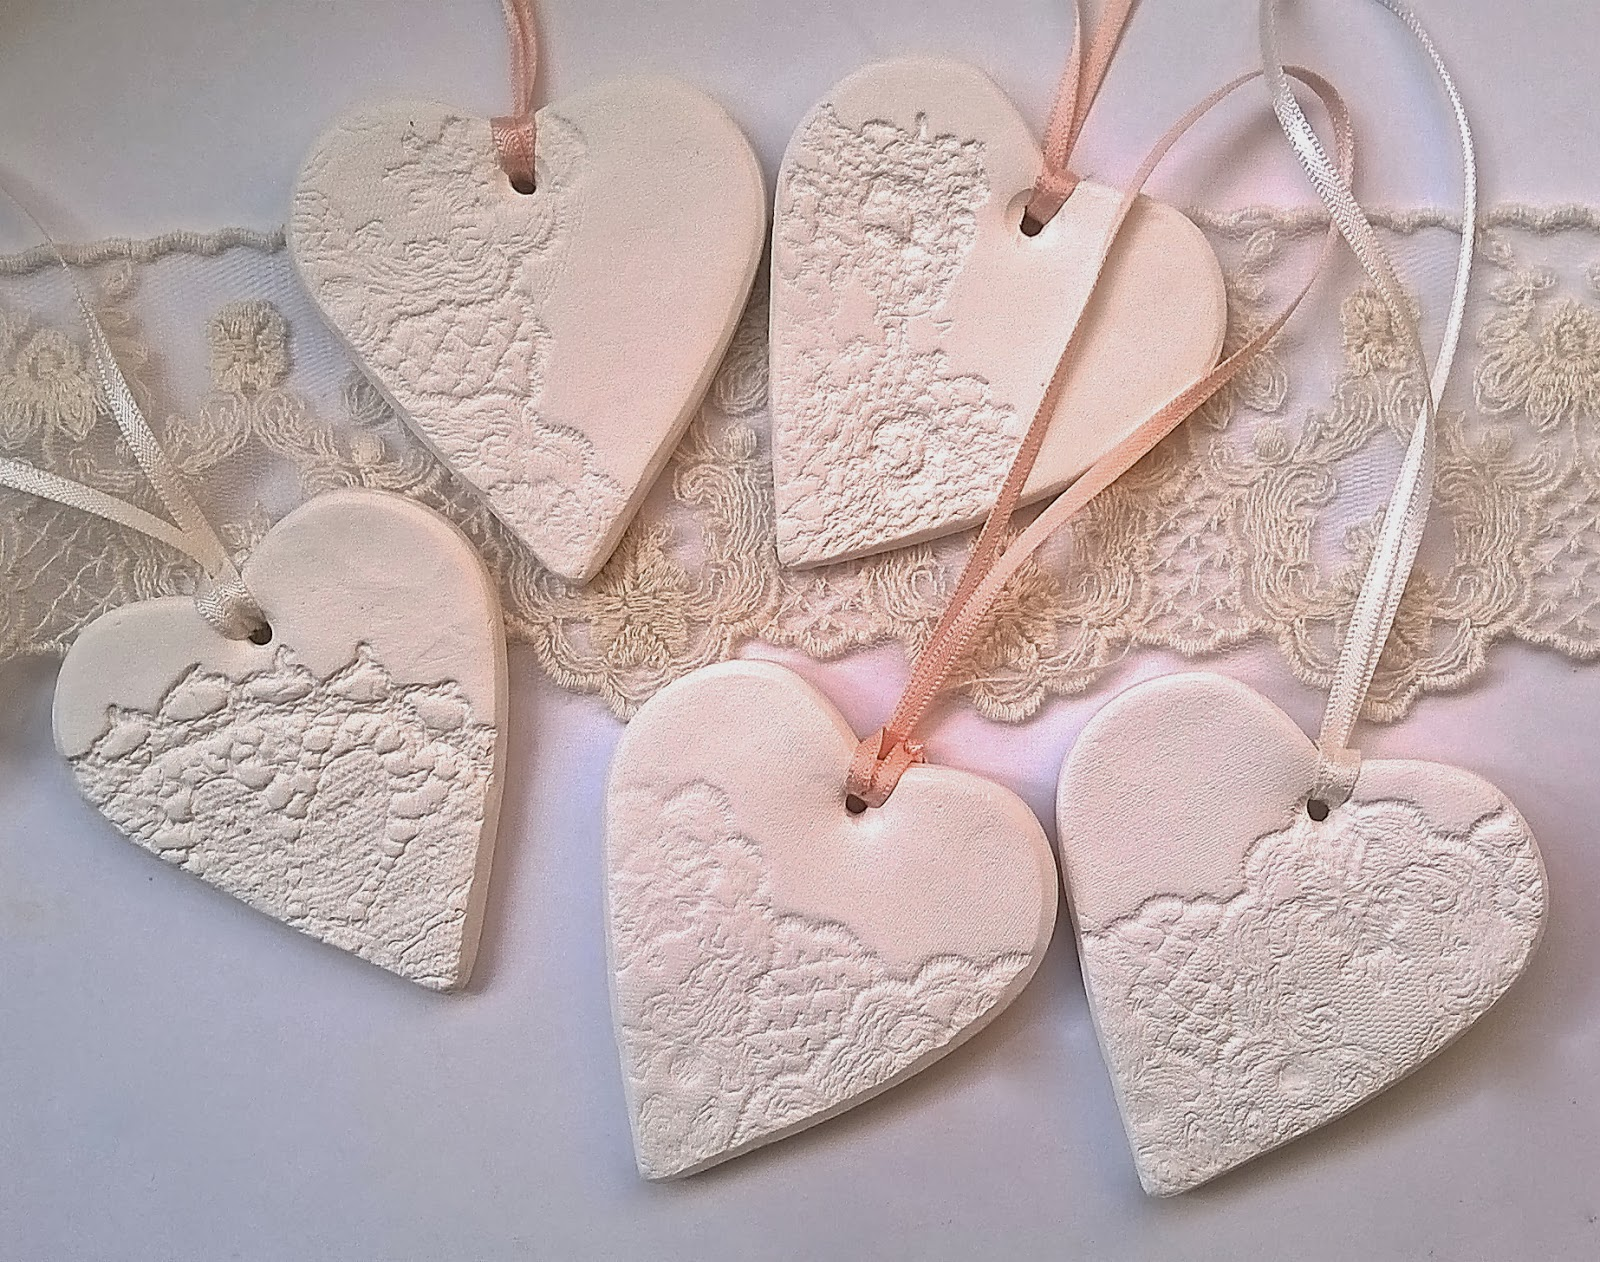 Some Of The Hearts Ready To Pack Up